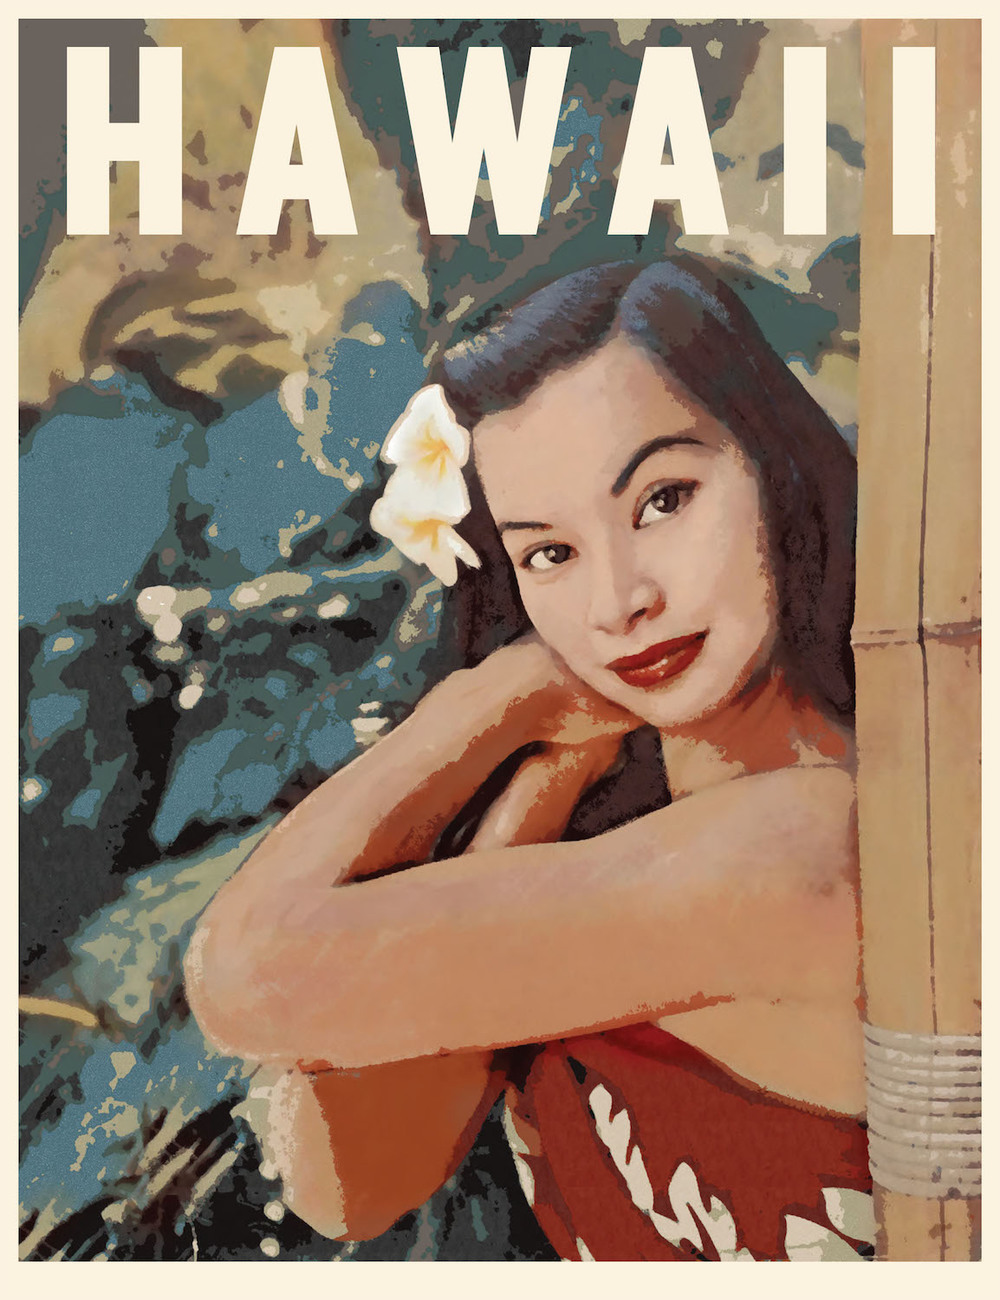 HAWAIIholiday poster 20x26.jpg